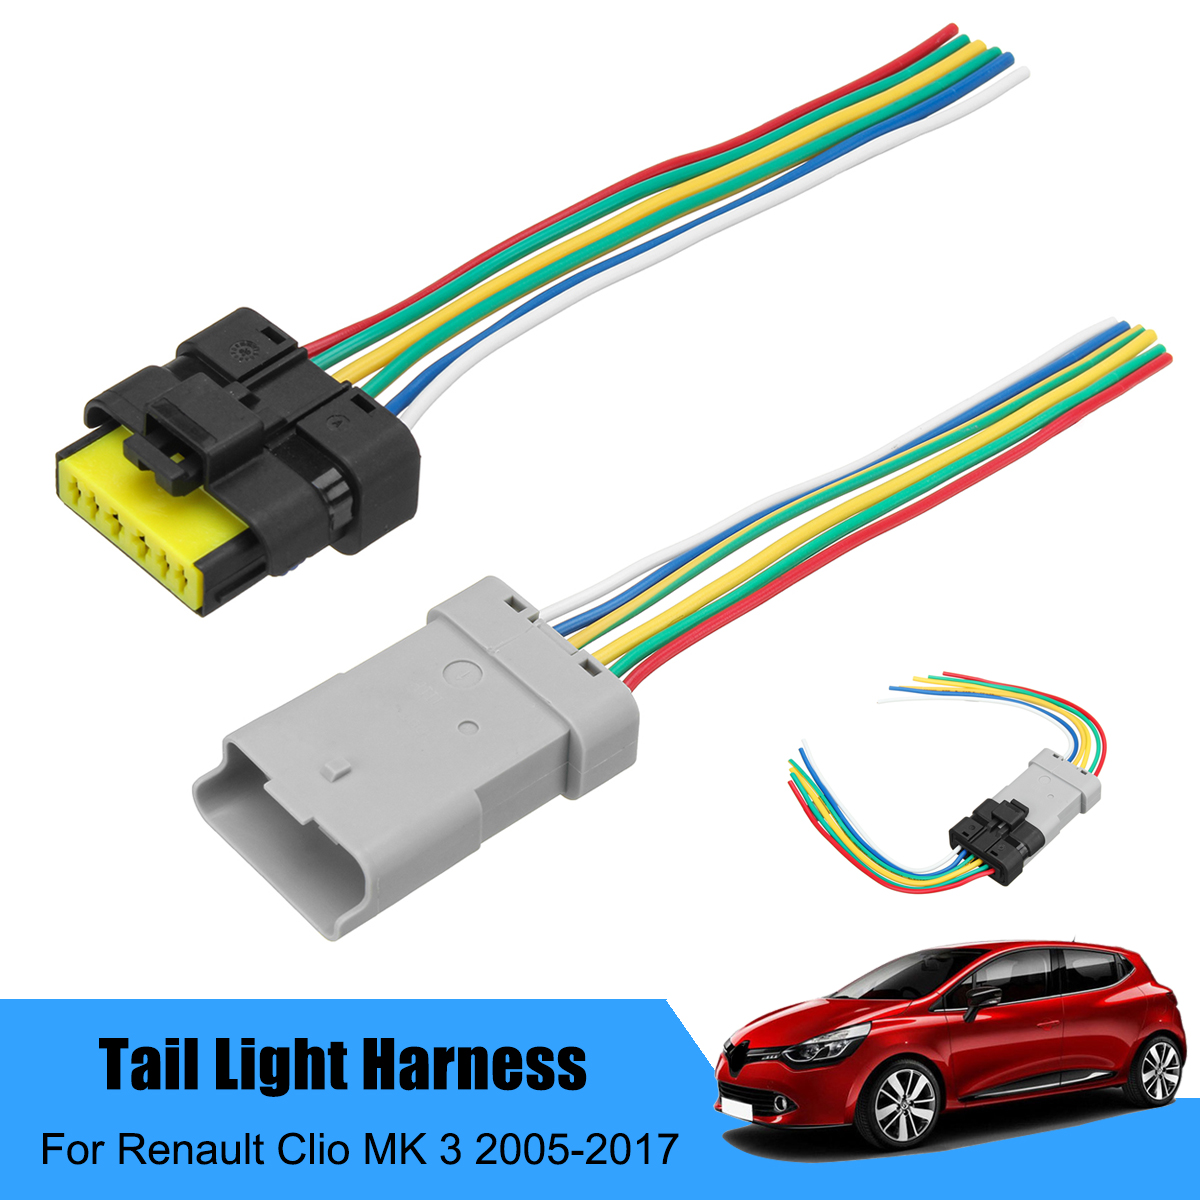 medium resolution of car rear tail light loom harness pigtail adapter for renault clio mk 3 2005 2017